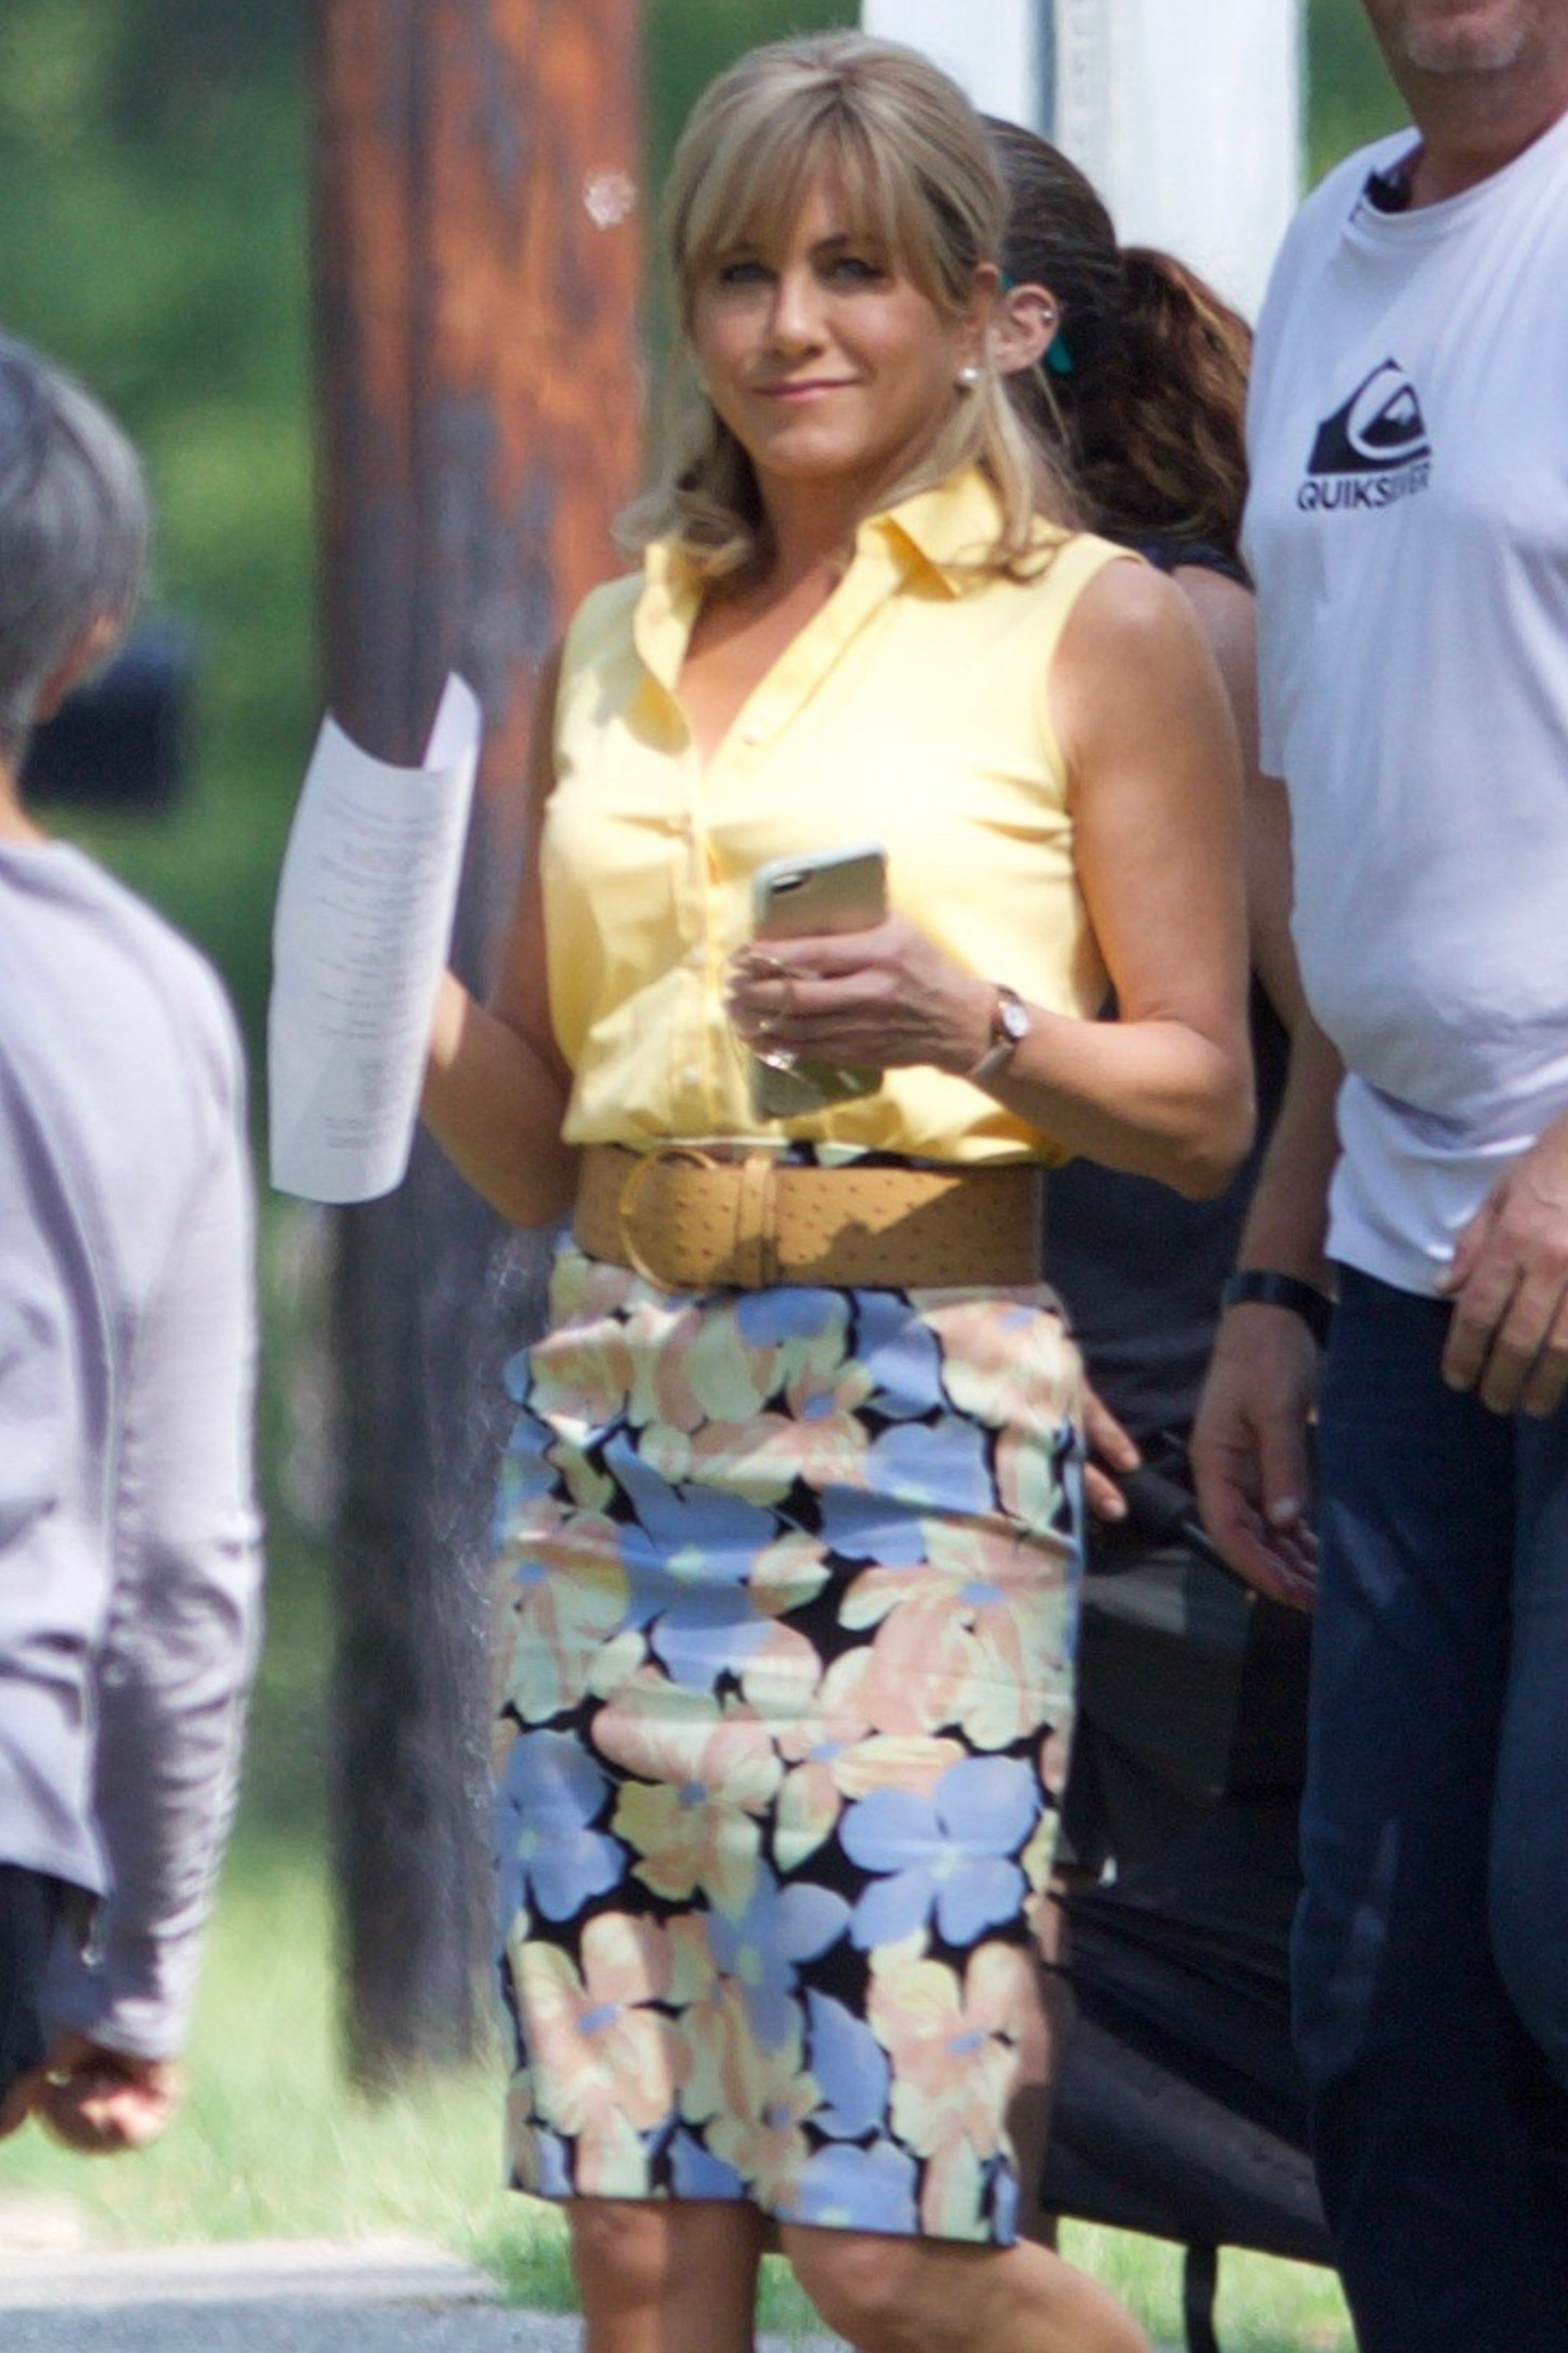 Jonesboro, GA  - *EXCLUSIVE* Jennifer Aniston smiles for the camera as she arrives on the set of 'Dumplin' in Jonesboro, Georgia. Dumplin' is a story of a girl named Willowdean Dickson with the nickname Dumplin, who enters a beauty pageant in order to win over the boy she likes and stick it to the other girls at school. Aniston plays the role of Willowdean Dickson's mother, Rosie Dickson.  Pictured: Jennifer Aniston  BACKGRID USA 6 SEPTEMBER 2017   USA: +1 310 798 9111 / usasales@backgrid.com  UK: +44 208 344 2007 / uksales@backgrid.com  *UK Clients - Pictures Containing Children Please Pixelate Face Prior To Publication*, Image: 348562309, License: Rights-managed, Restrictions: , Model Release: no, Credit line: Profimedia, AKM-GSI